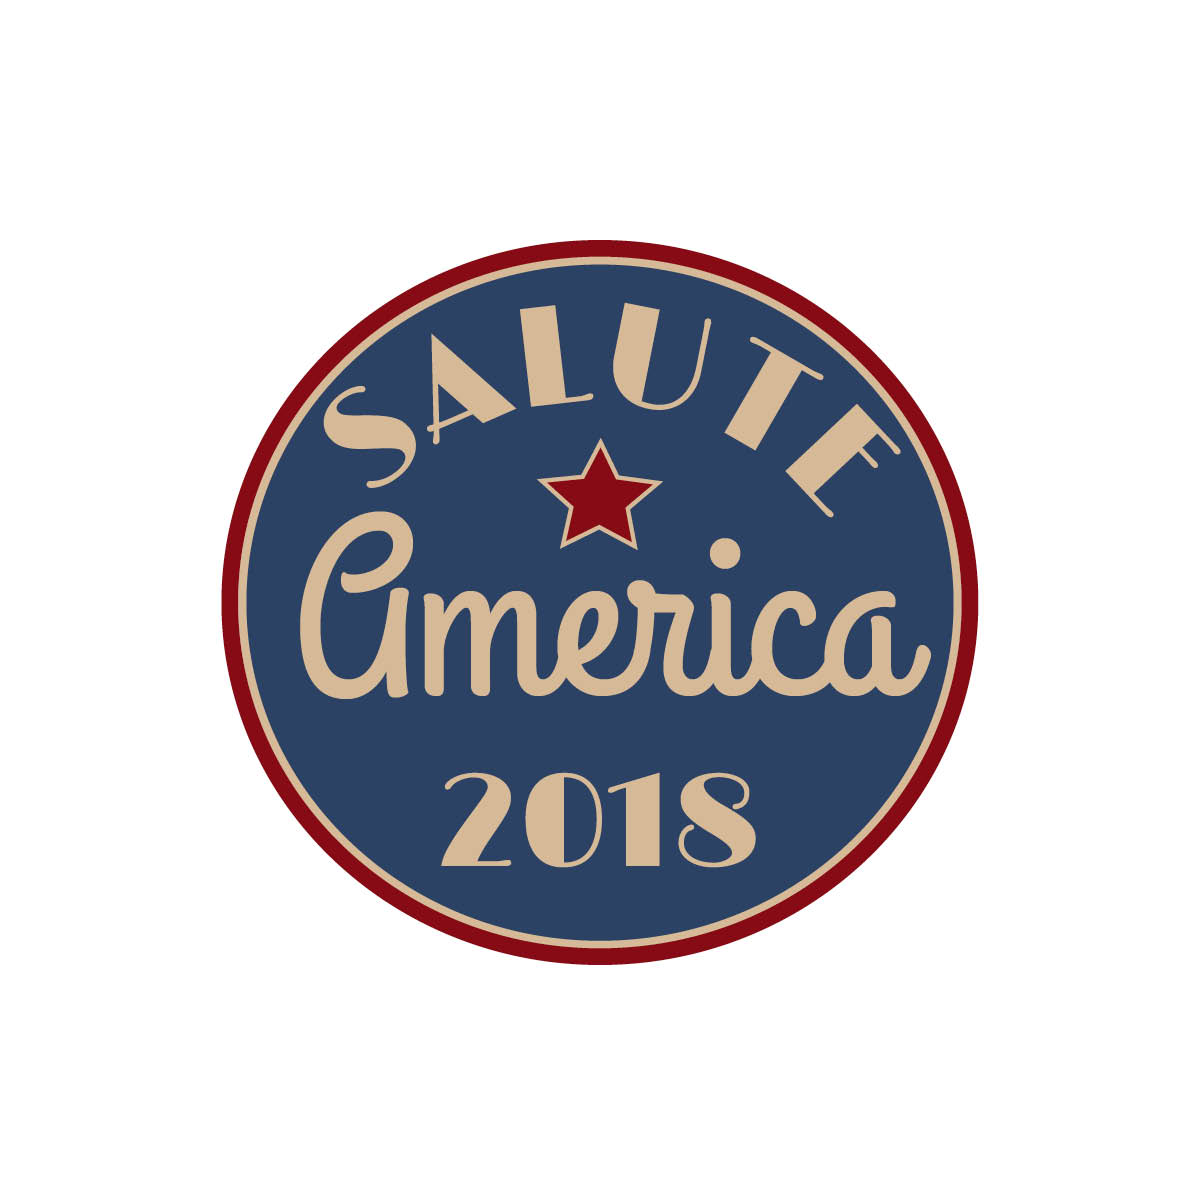 Join us at Salute America 2018